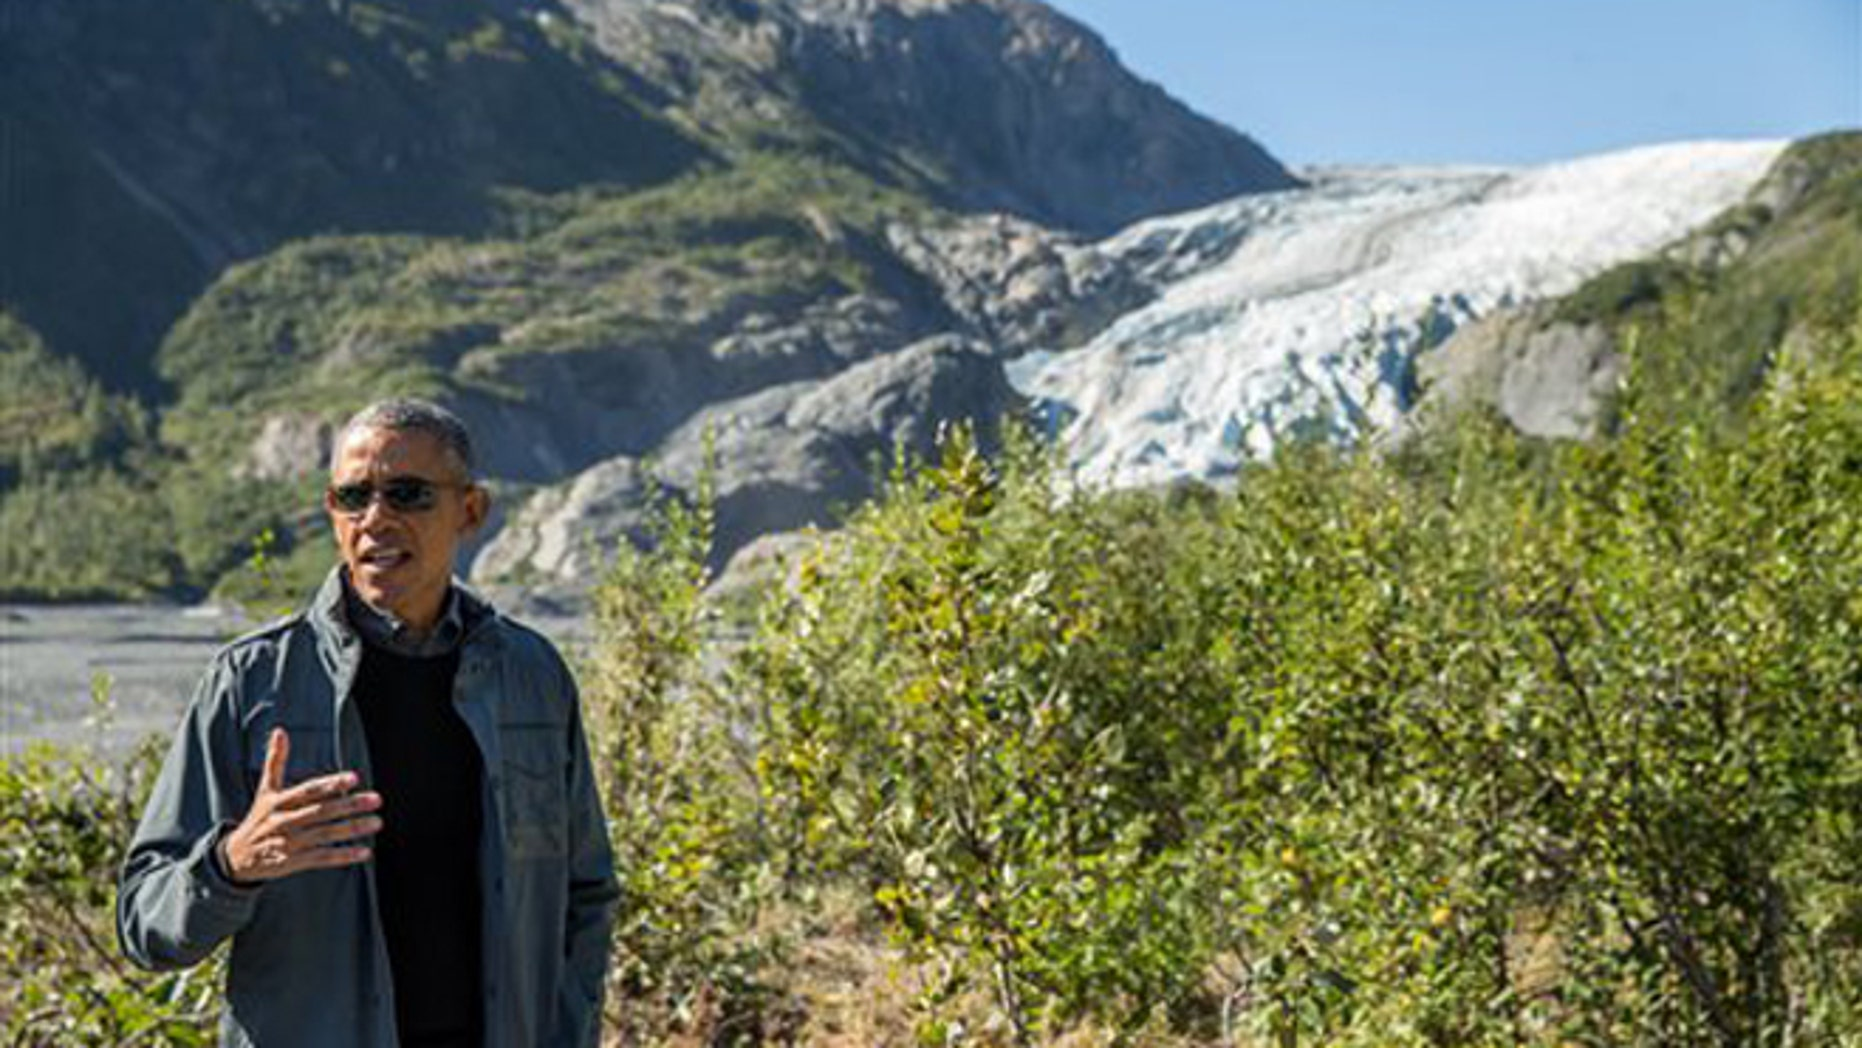 Sept. 1, 2015: President Barack Obama speaks to members of the media while on a hike to the Exit Glacier in Seward, Alaska, which according to National Park Service research, has retreated approximately 1.25 miles over the past 200 years.